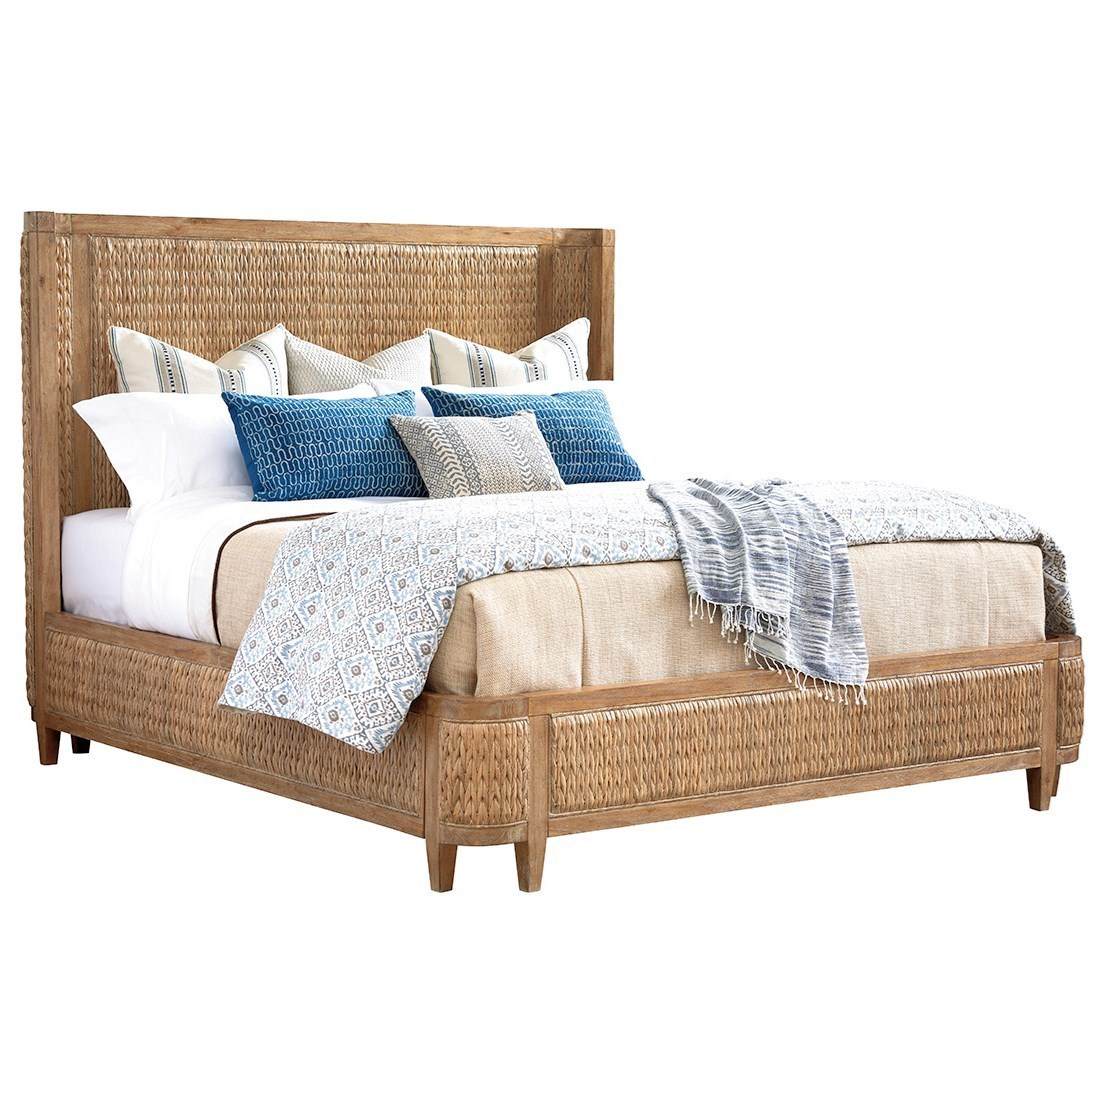 Los Altos Ivory Coast Woven Bed 5/0 Queen by Tommy Bahama Home at Baer's Furniture